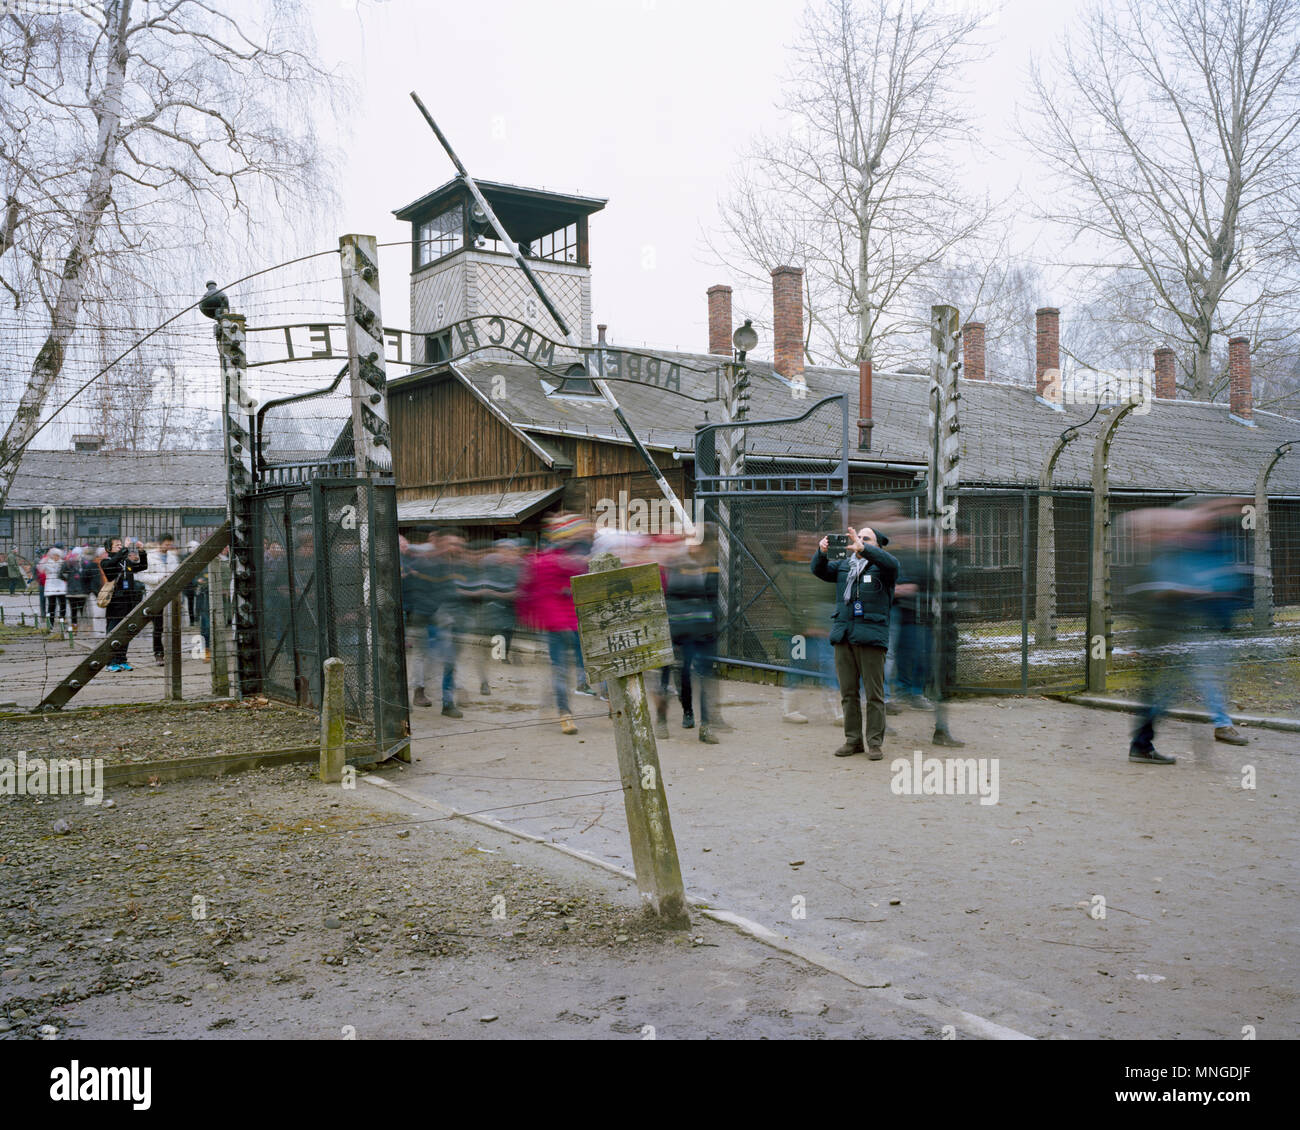 Photograph John Angerson Liberated on January 27th 1945. Auschwitz II Birkenau concentration camp in South West Poland - Stock Image